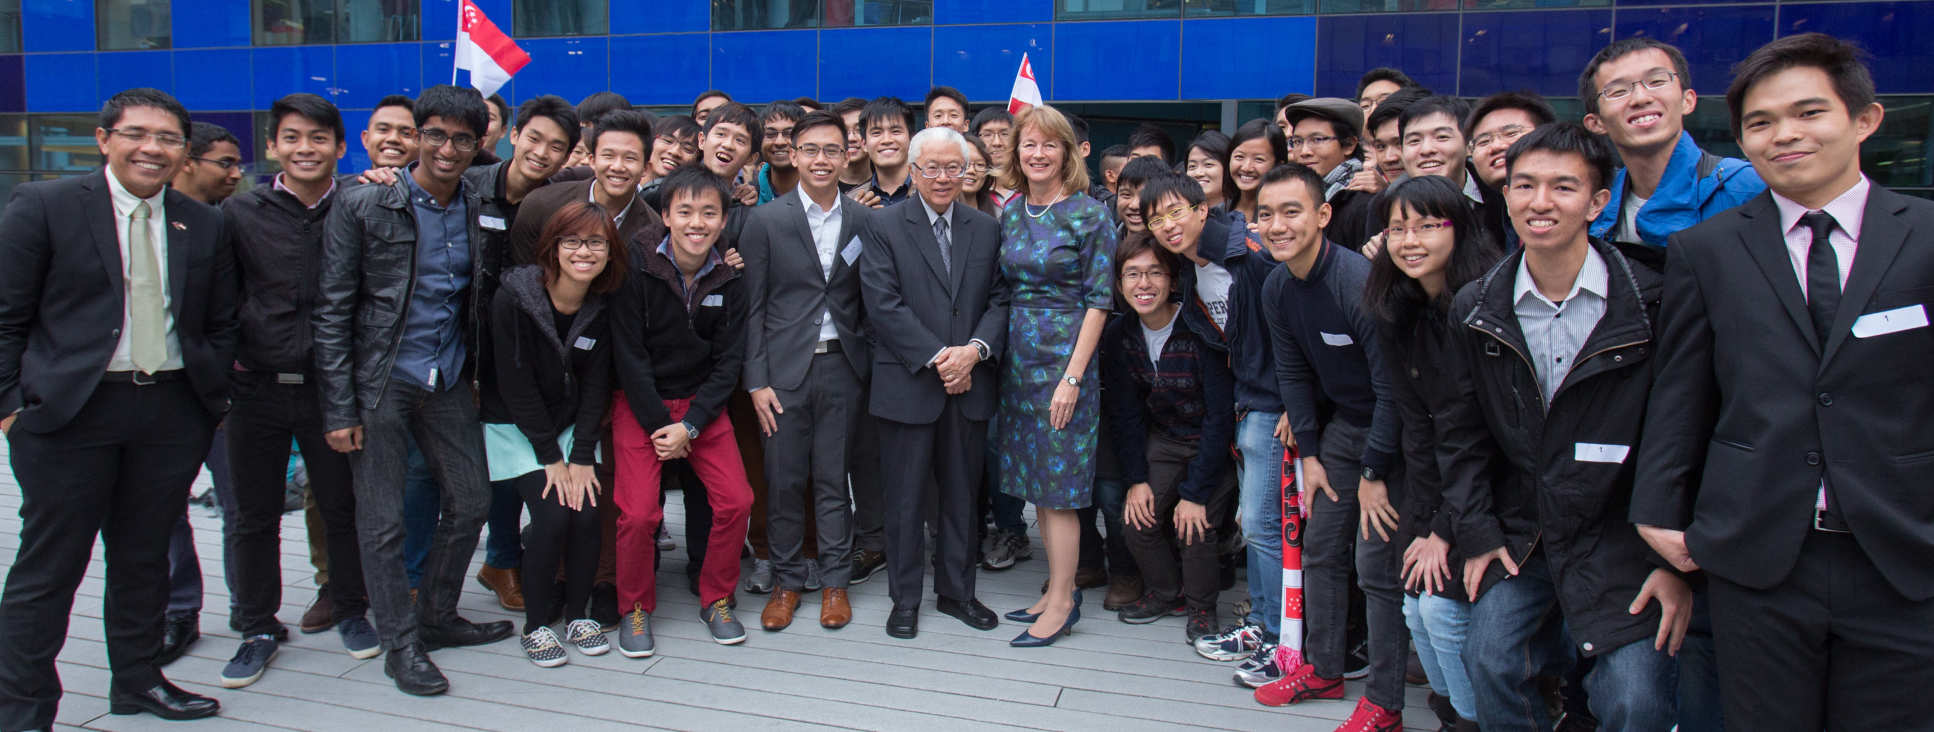 The Singaporean President Tony Tan Keng Yam visiting Imperial in 2014